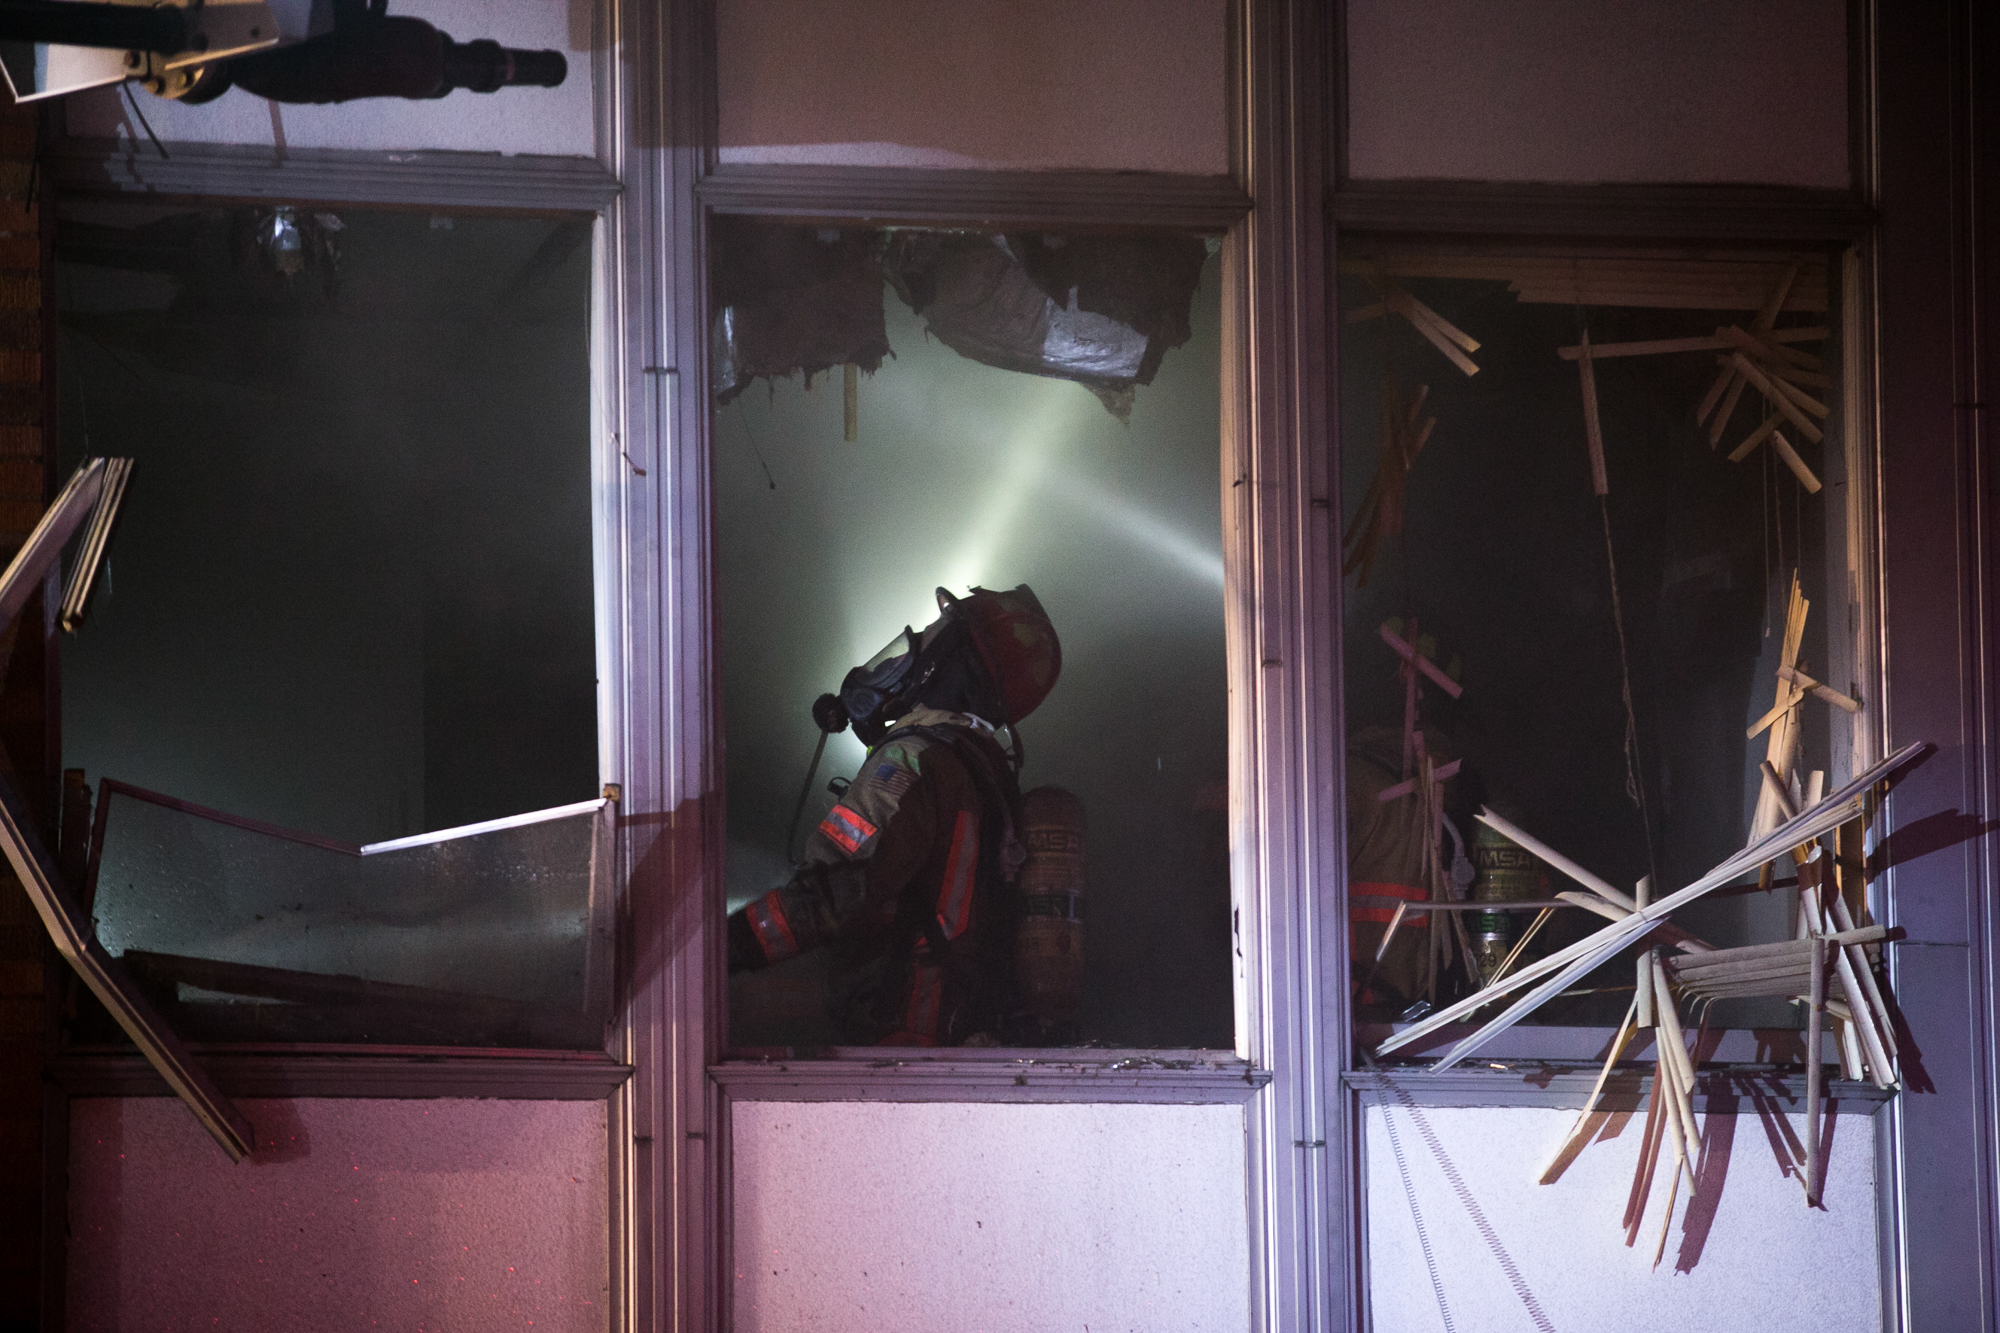 Rockford firefighters knock down a fire in the blighted former nursing home on Saturday, Dec. 15, 2018, at 1920 North Main Street in Rockford. [SCOTT P. YATES/RRSTAR.COM STAFF]